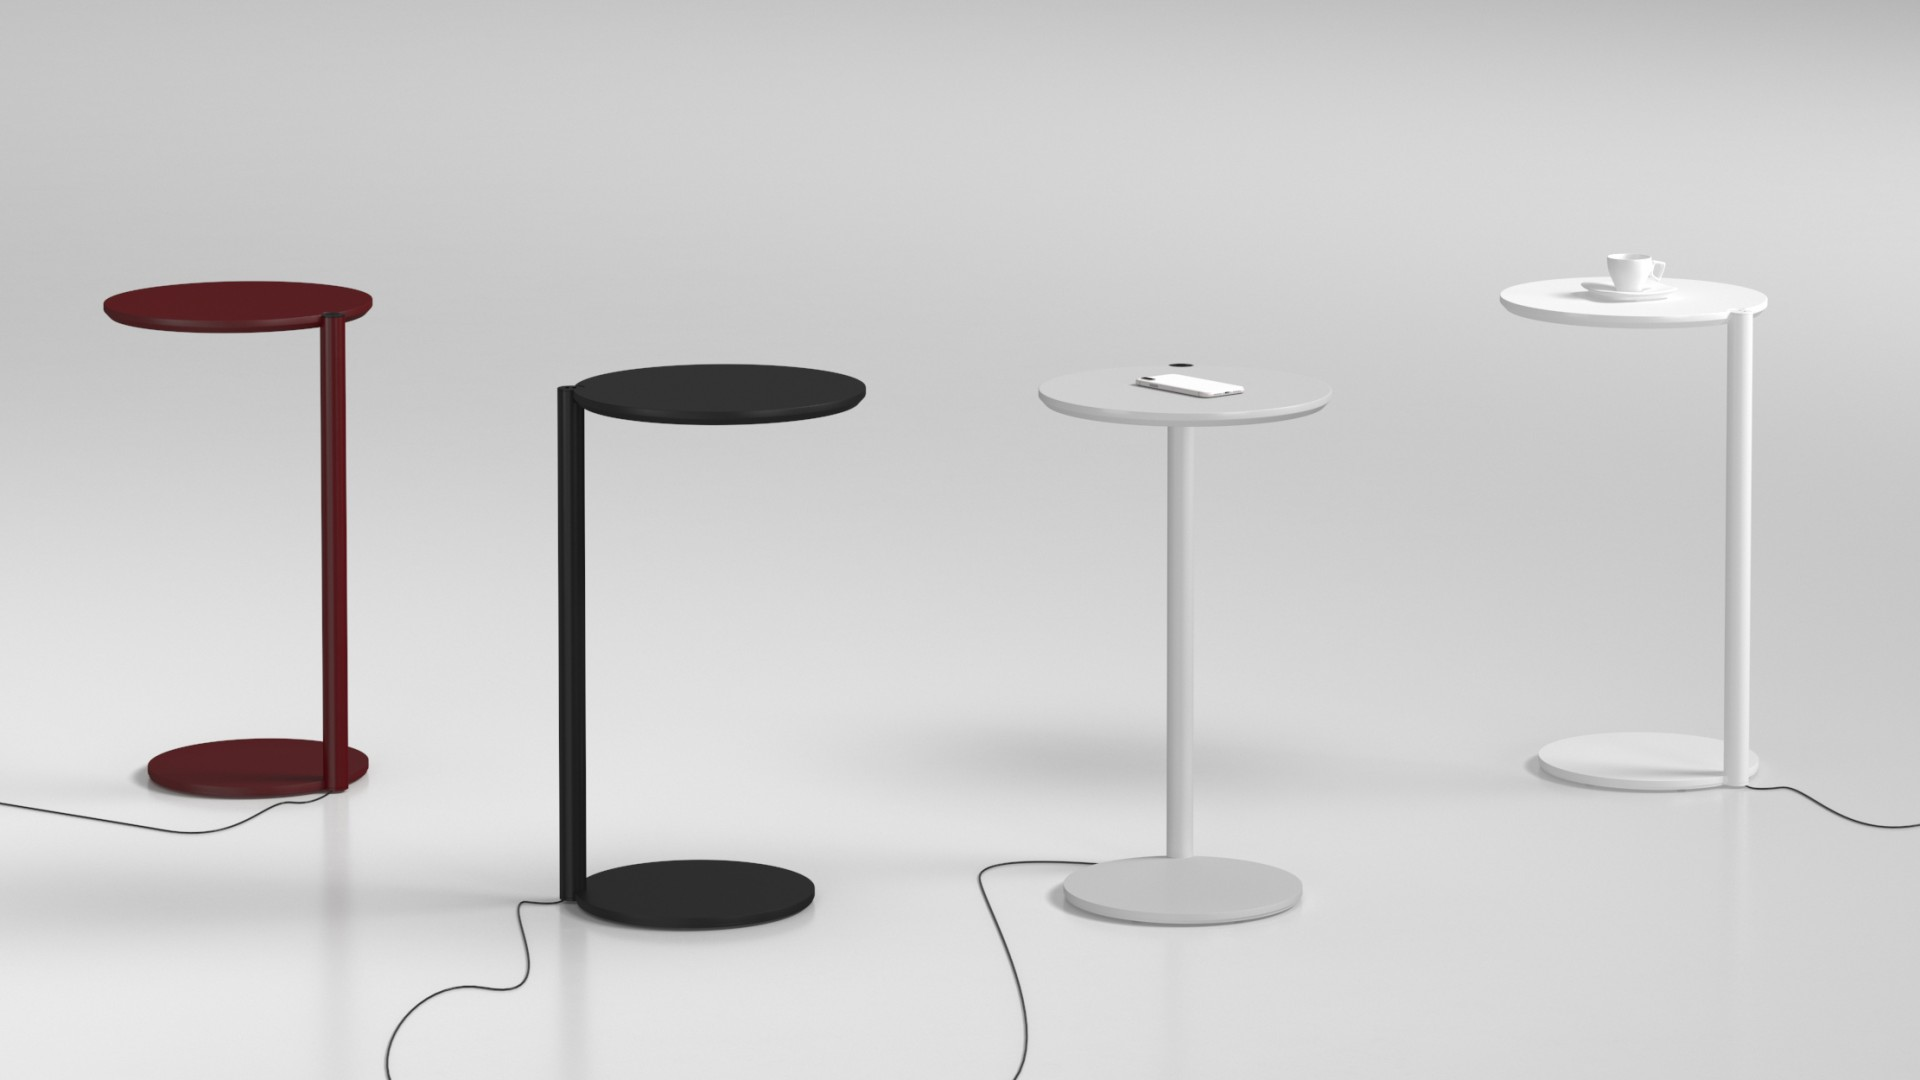 New in our offer! USB powered table - DROPS USB Table